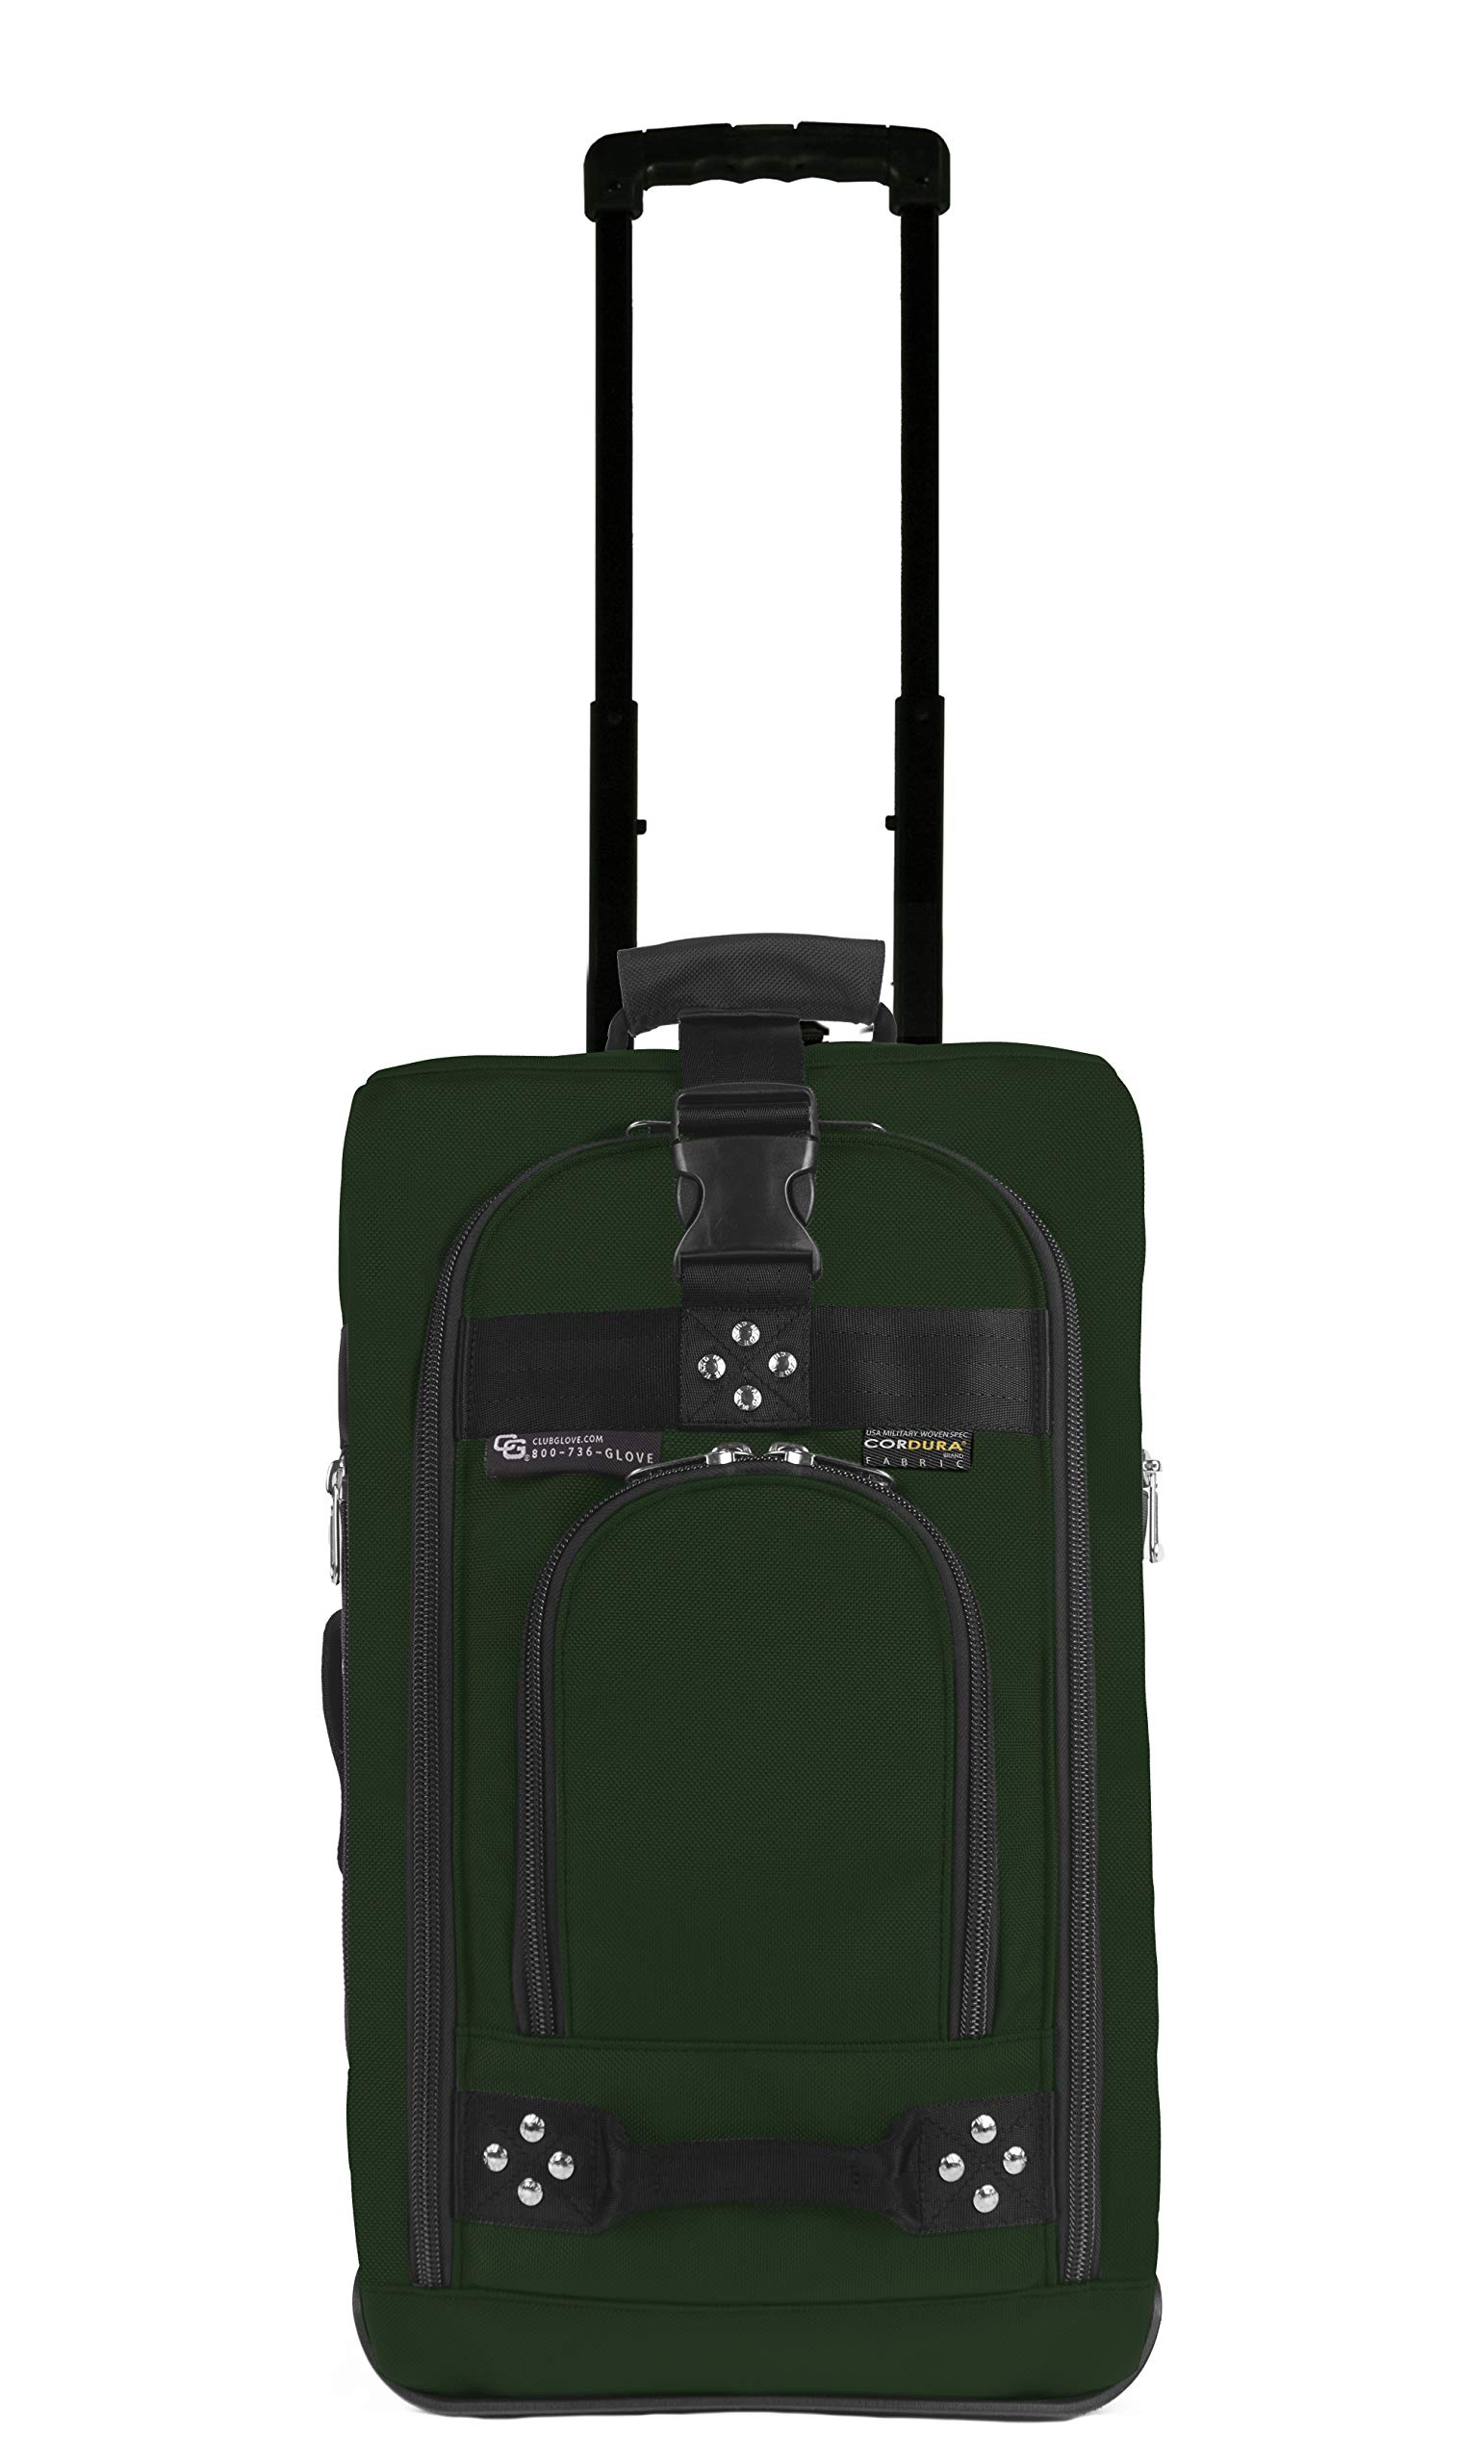 Club Glove Carry On Bag III Travel Luggage (Green)